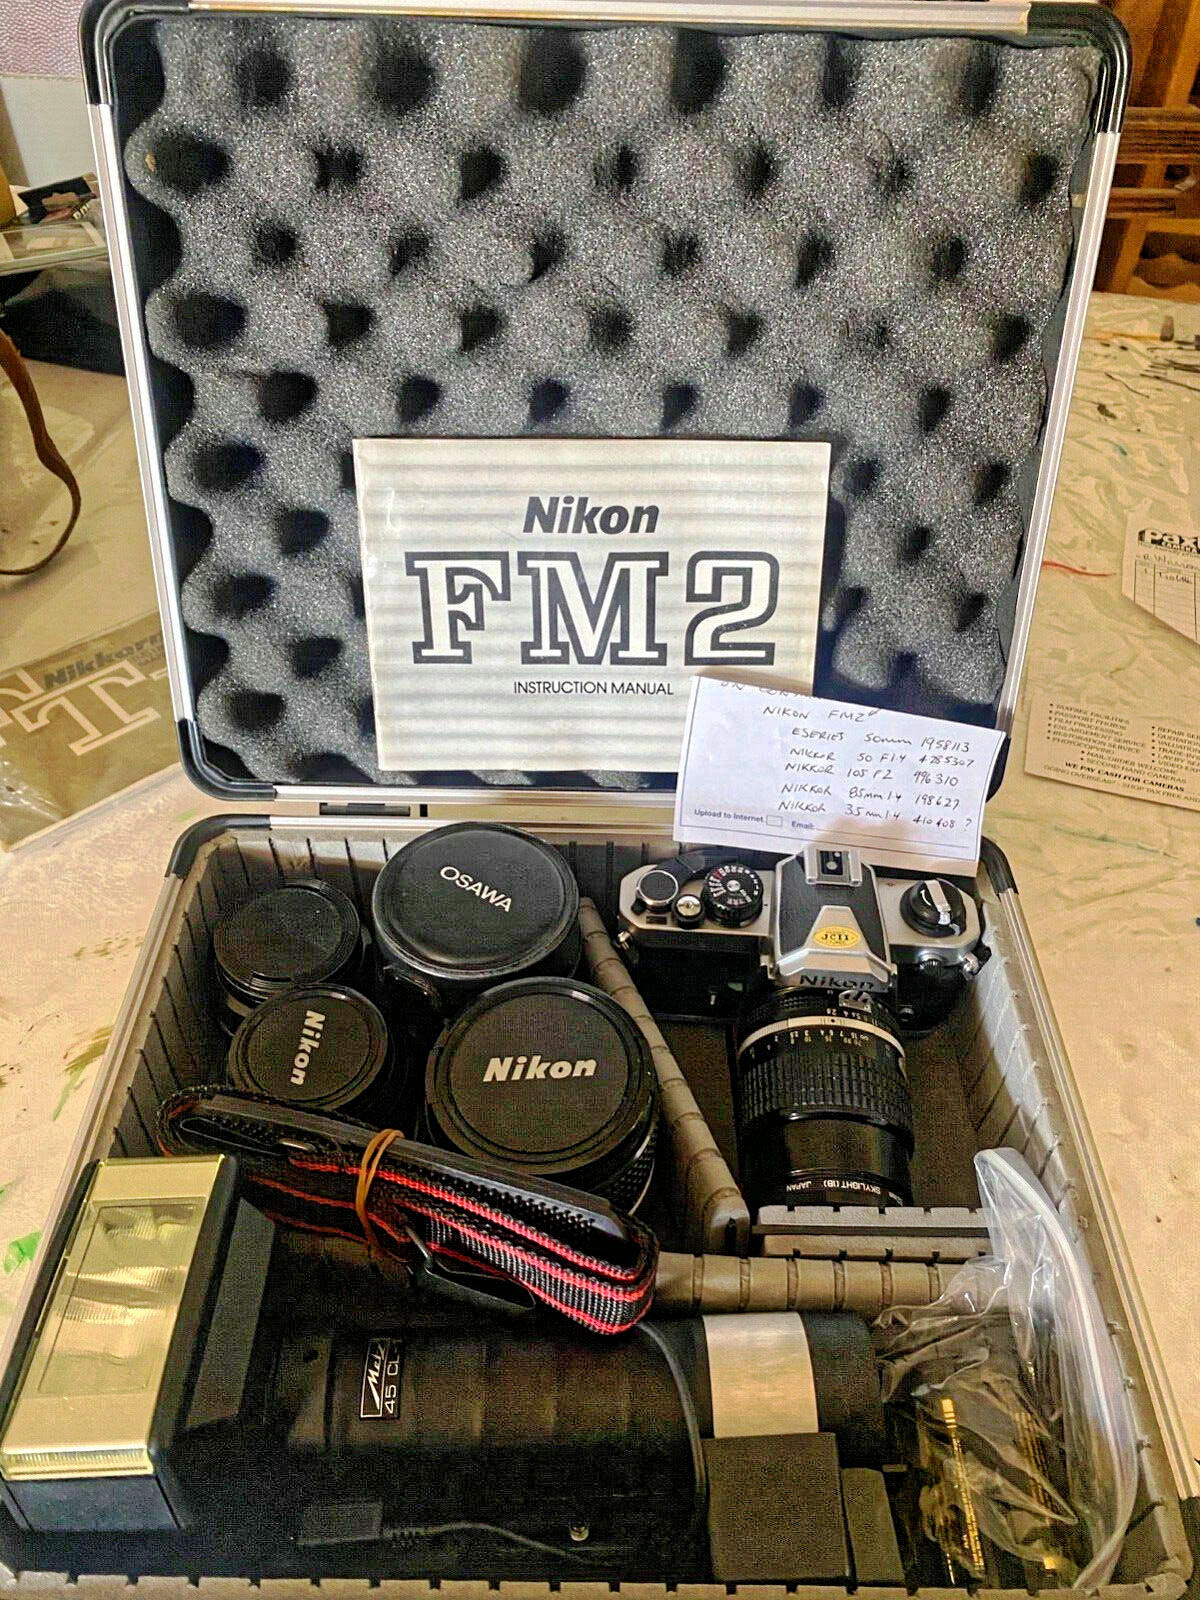 This should be Nikon-FM2-1.jpeg.  Is it missing?